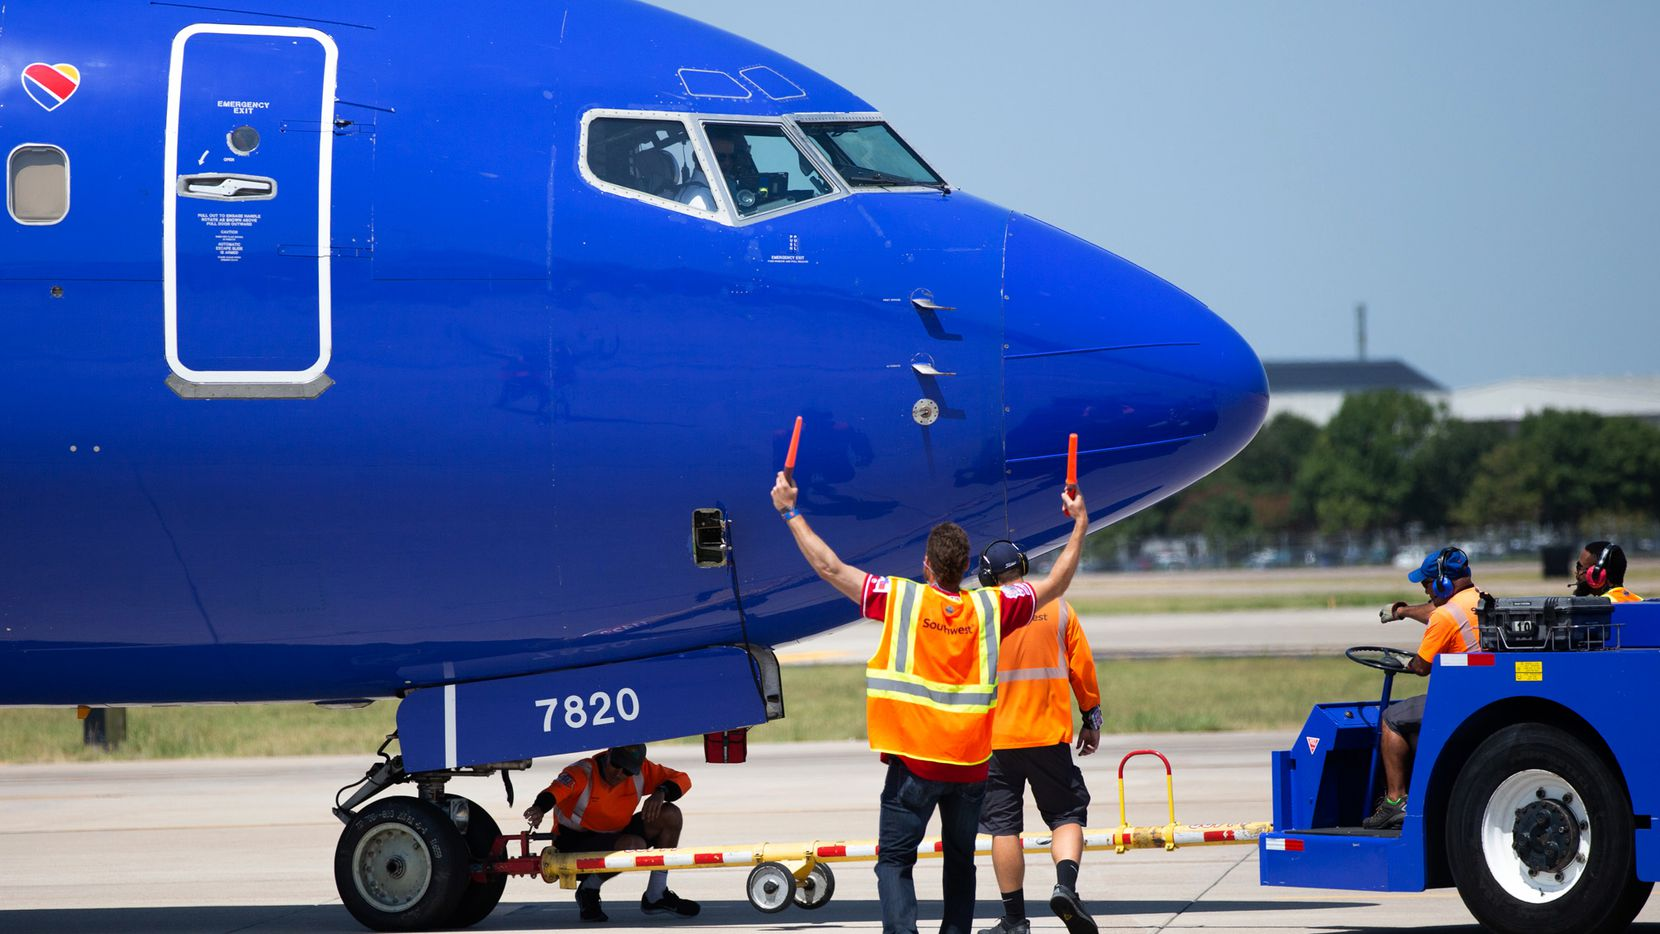 Texas Rangers right fielder Hunter Pence (center) assists aircraft marshallers as center fielder Delino DeShields Jr. (far right) accompanies a ramp agent maneuvering a plane at Dallas Love Field Airport on Tuesday, July 30, 2019. Players visited Southwest Airlines' home airport to assist with greeting customers, boarding flights and helping to ensure an on-time departure.